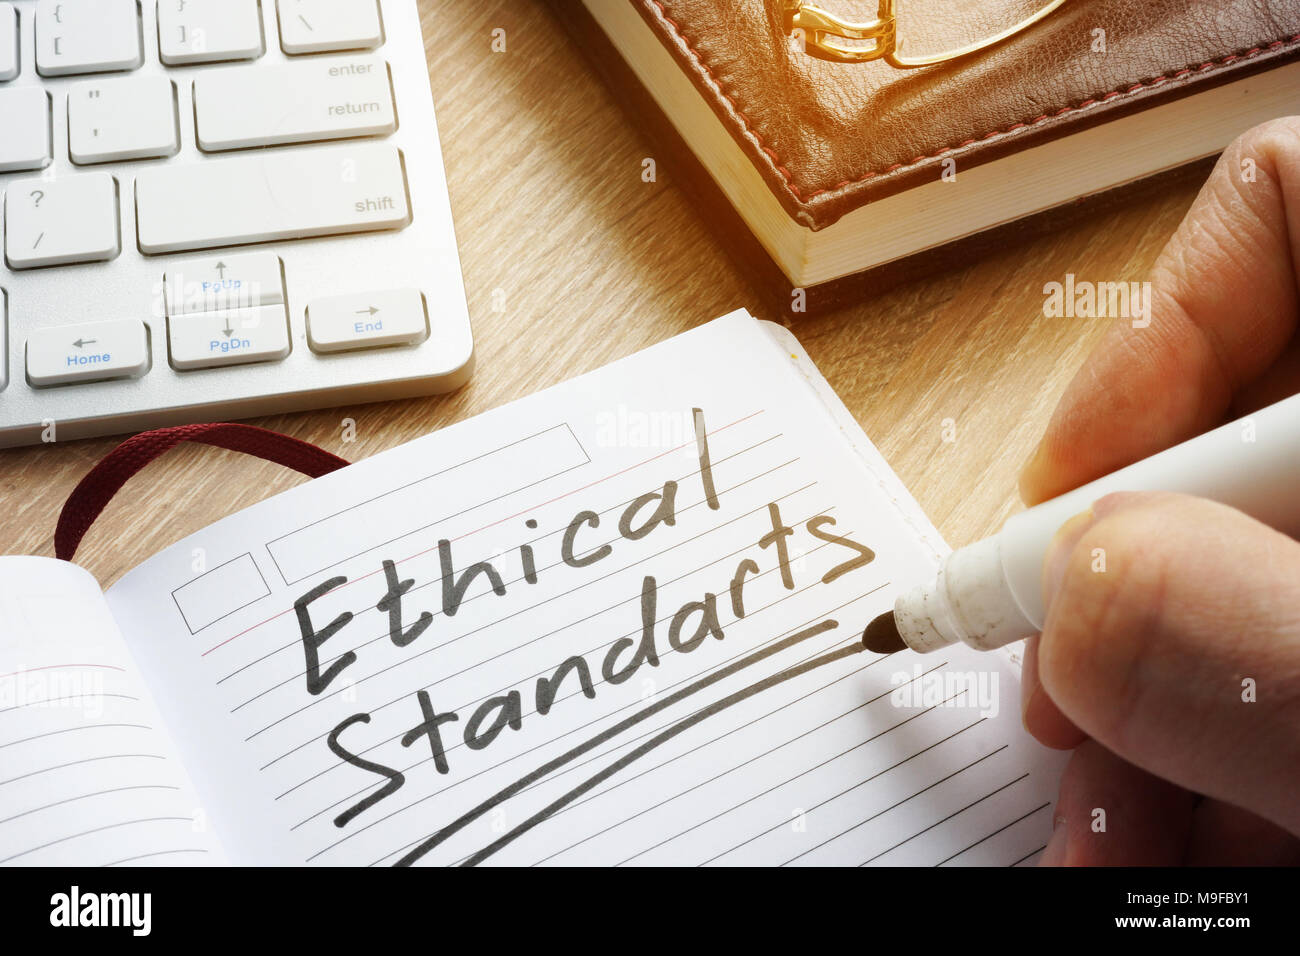 Ethical Standards written in note. - Stock Image